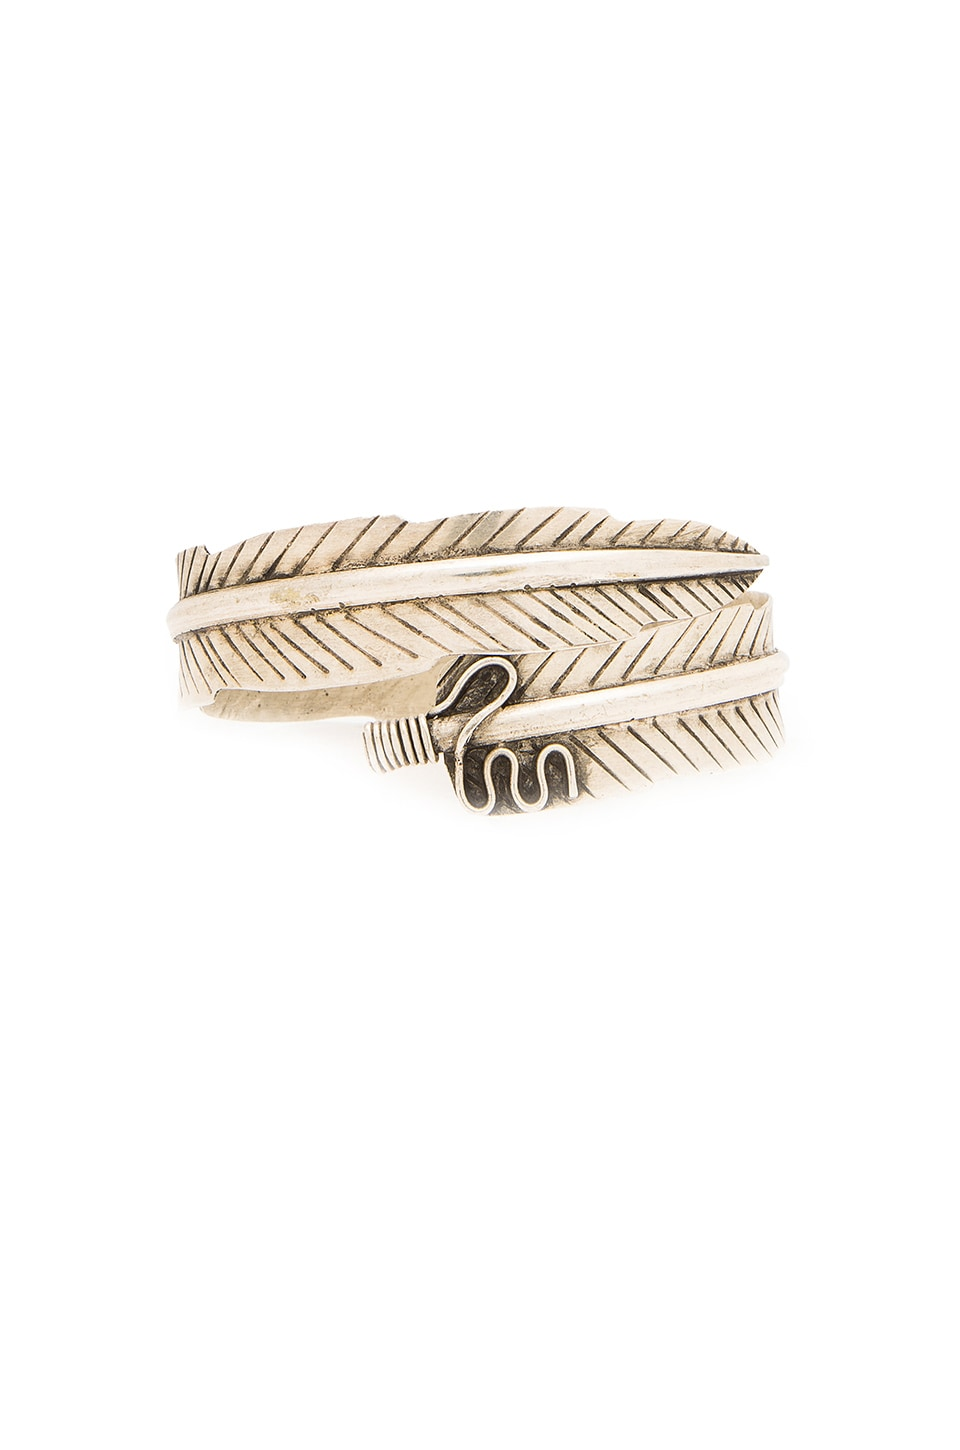 Natalie B Jewelry Wild Feather Arm Cuff in Silver